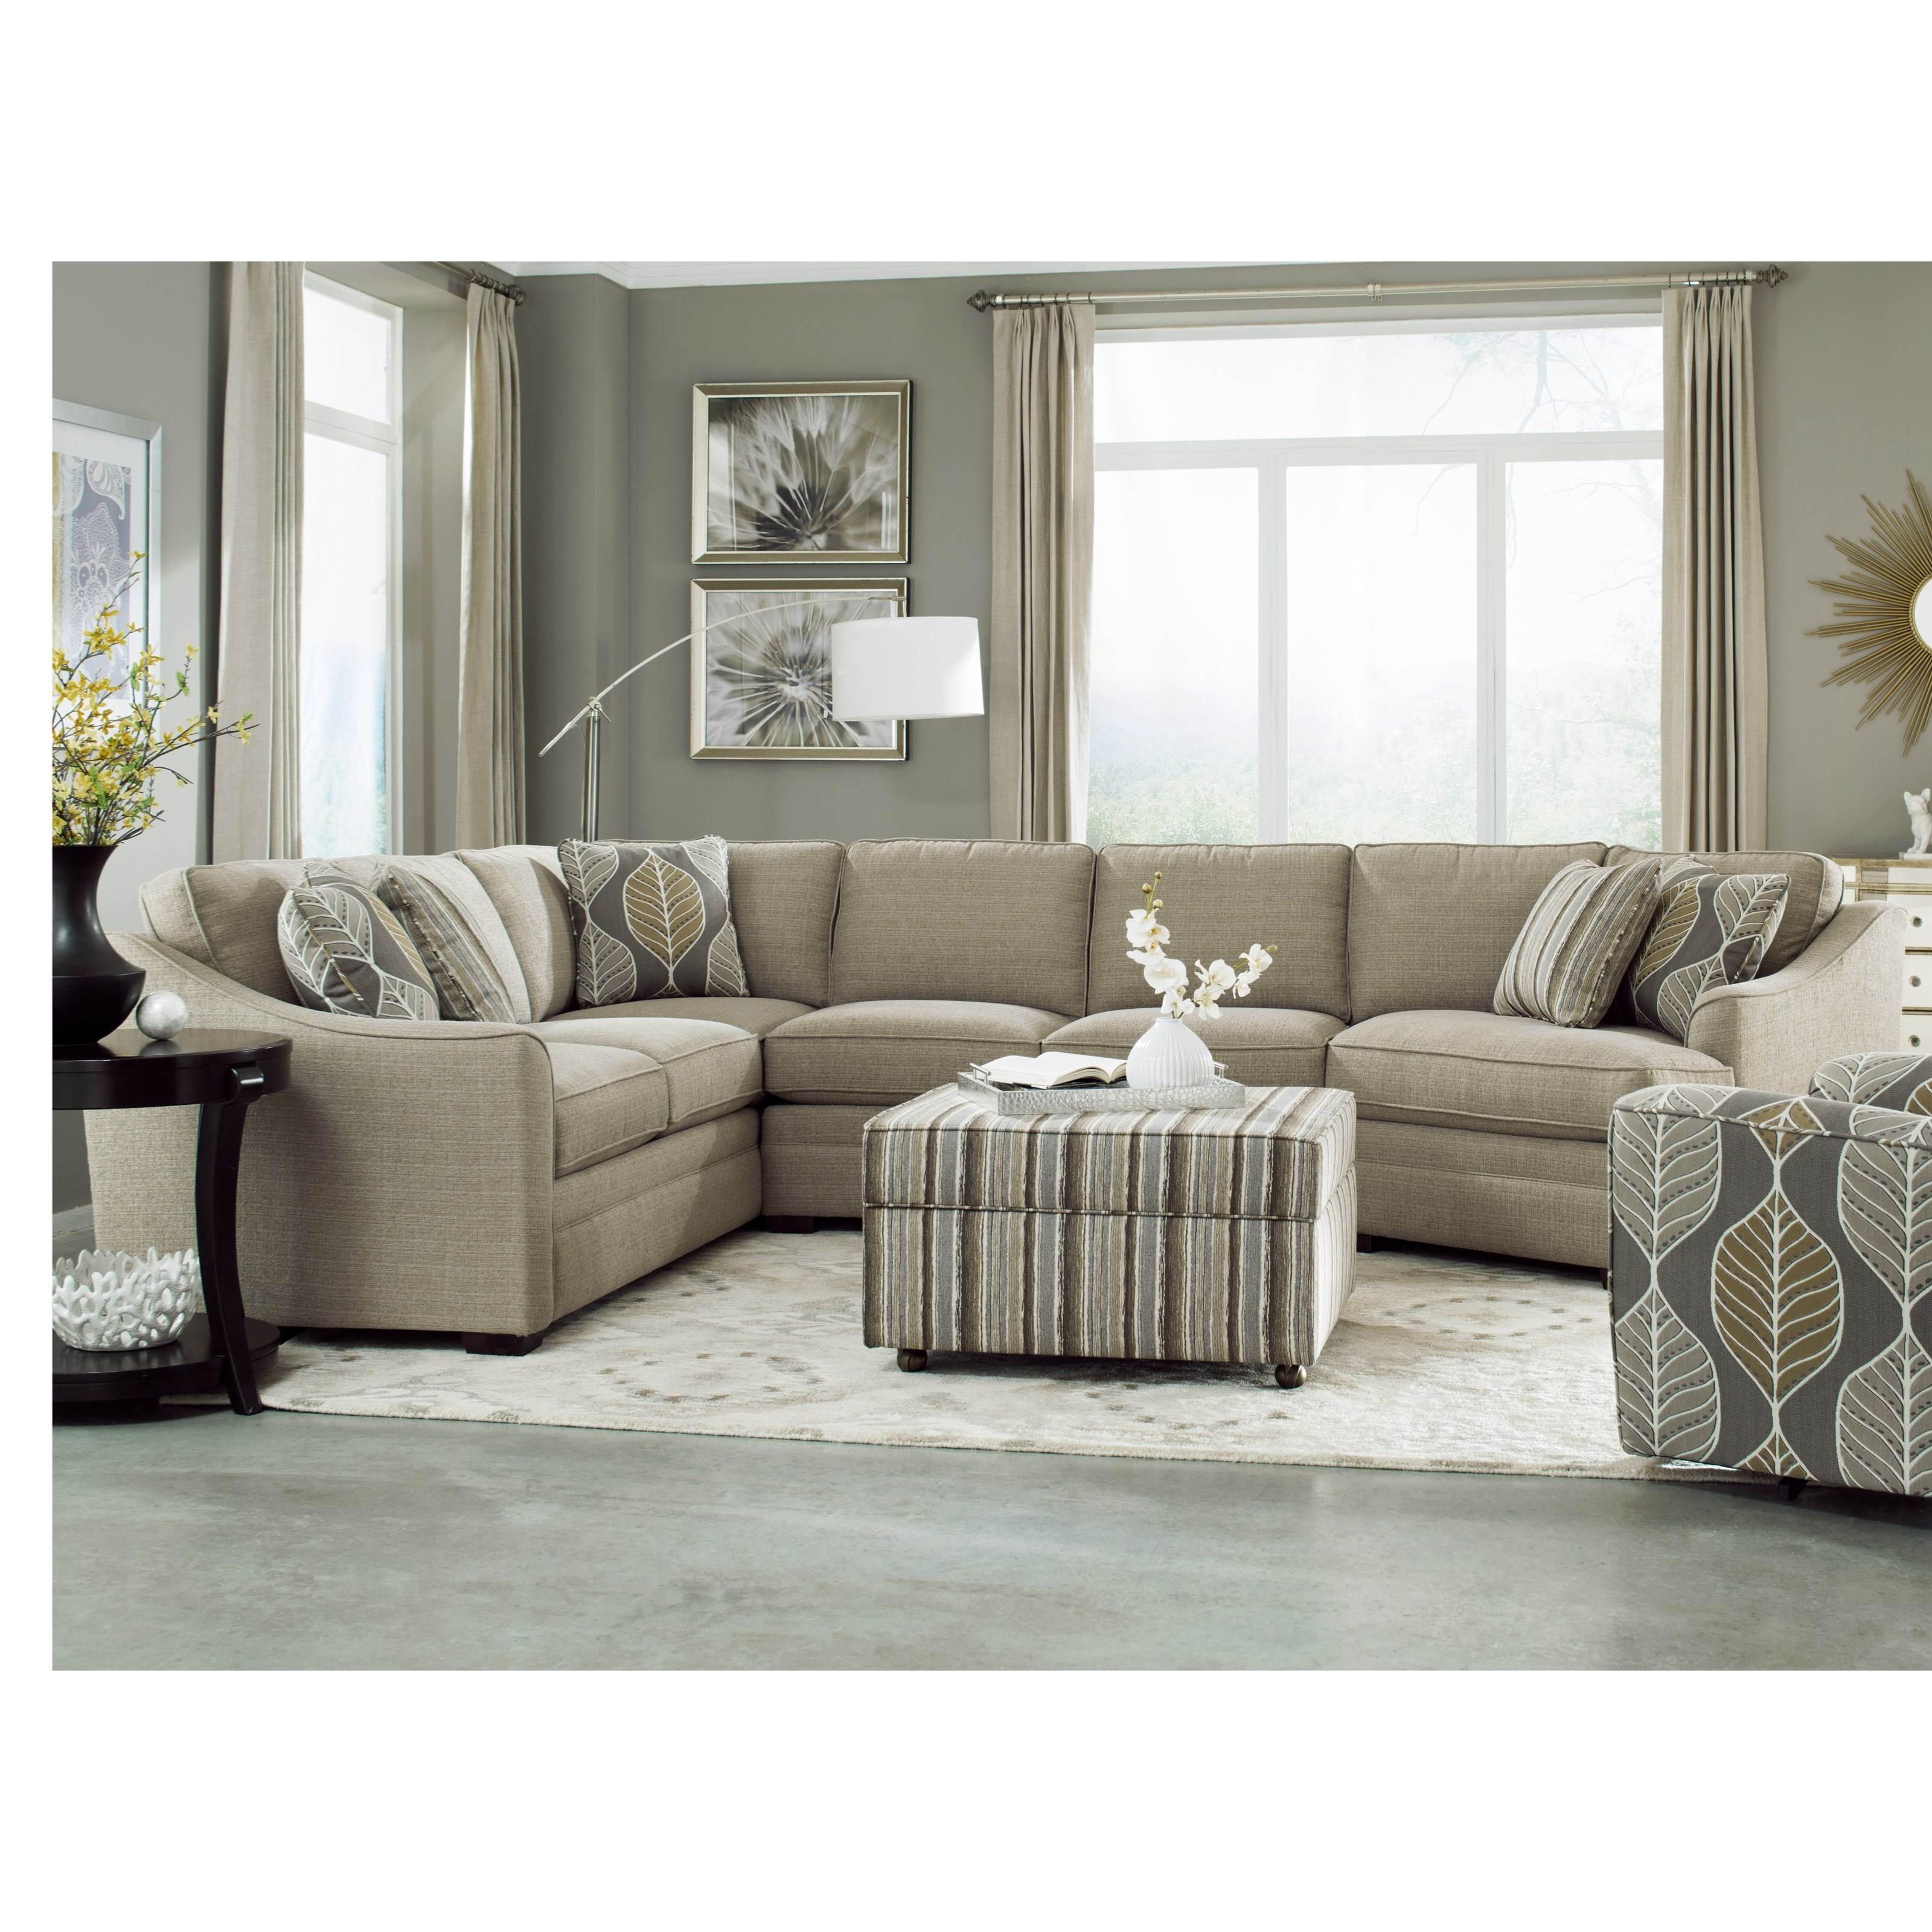 Hickory Craft F9 Custom Collection <B>Customizable</b> 3 Piece Throughout Most Recent Avery 2 Piece Sectionals With Laf Armless Chaise (View 11 of 20)